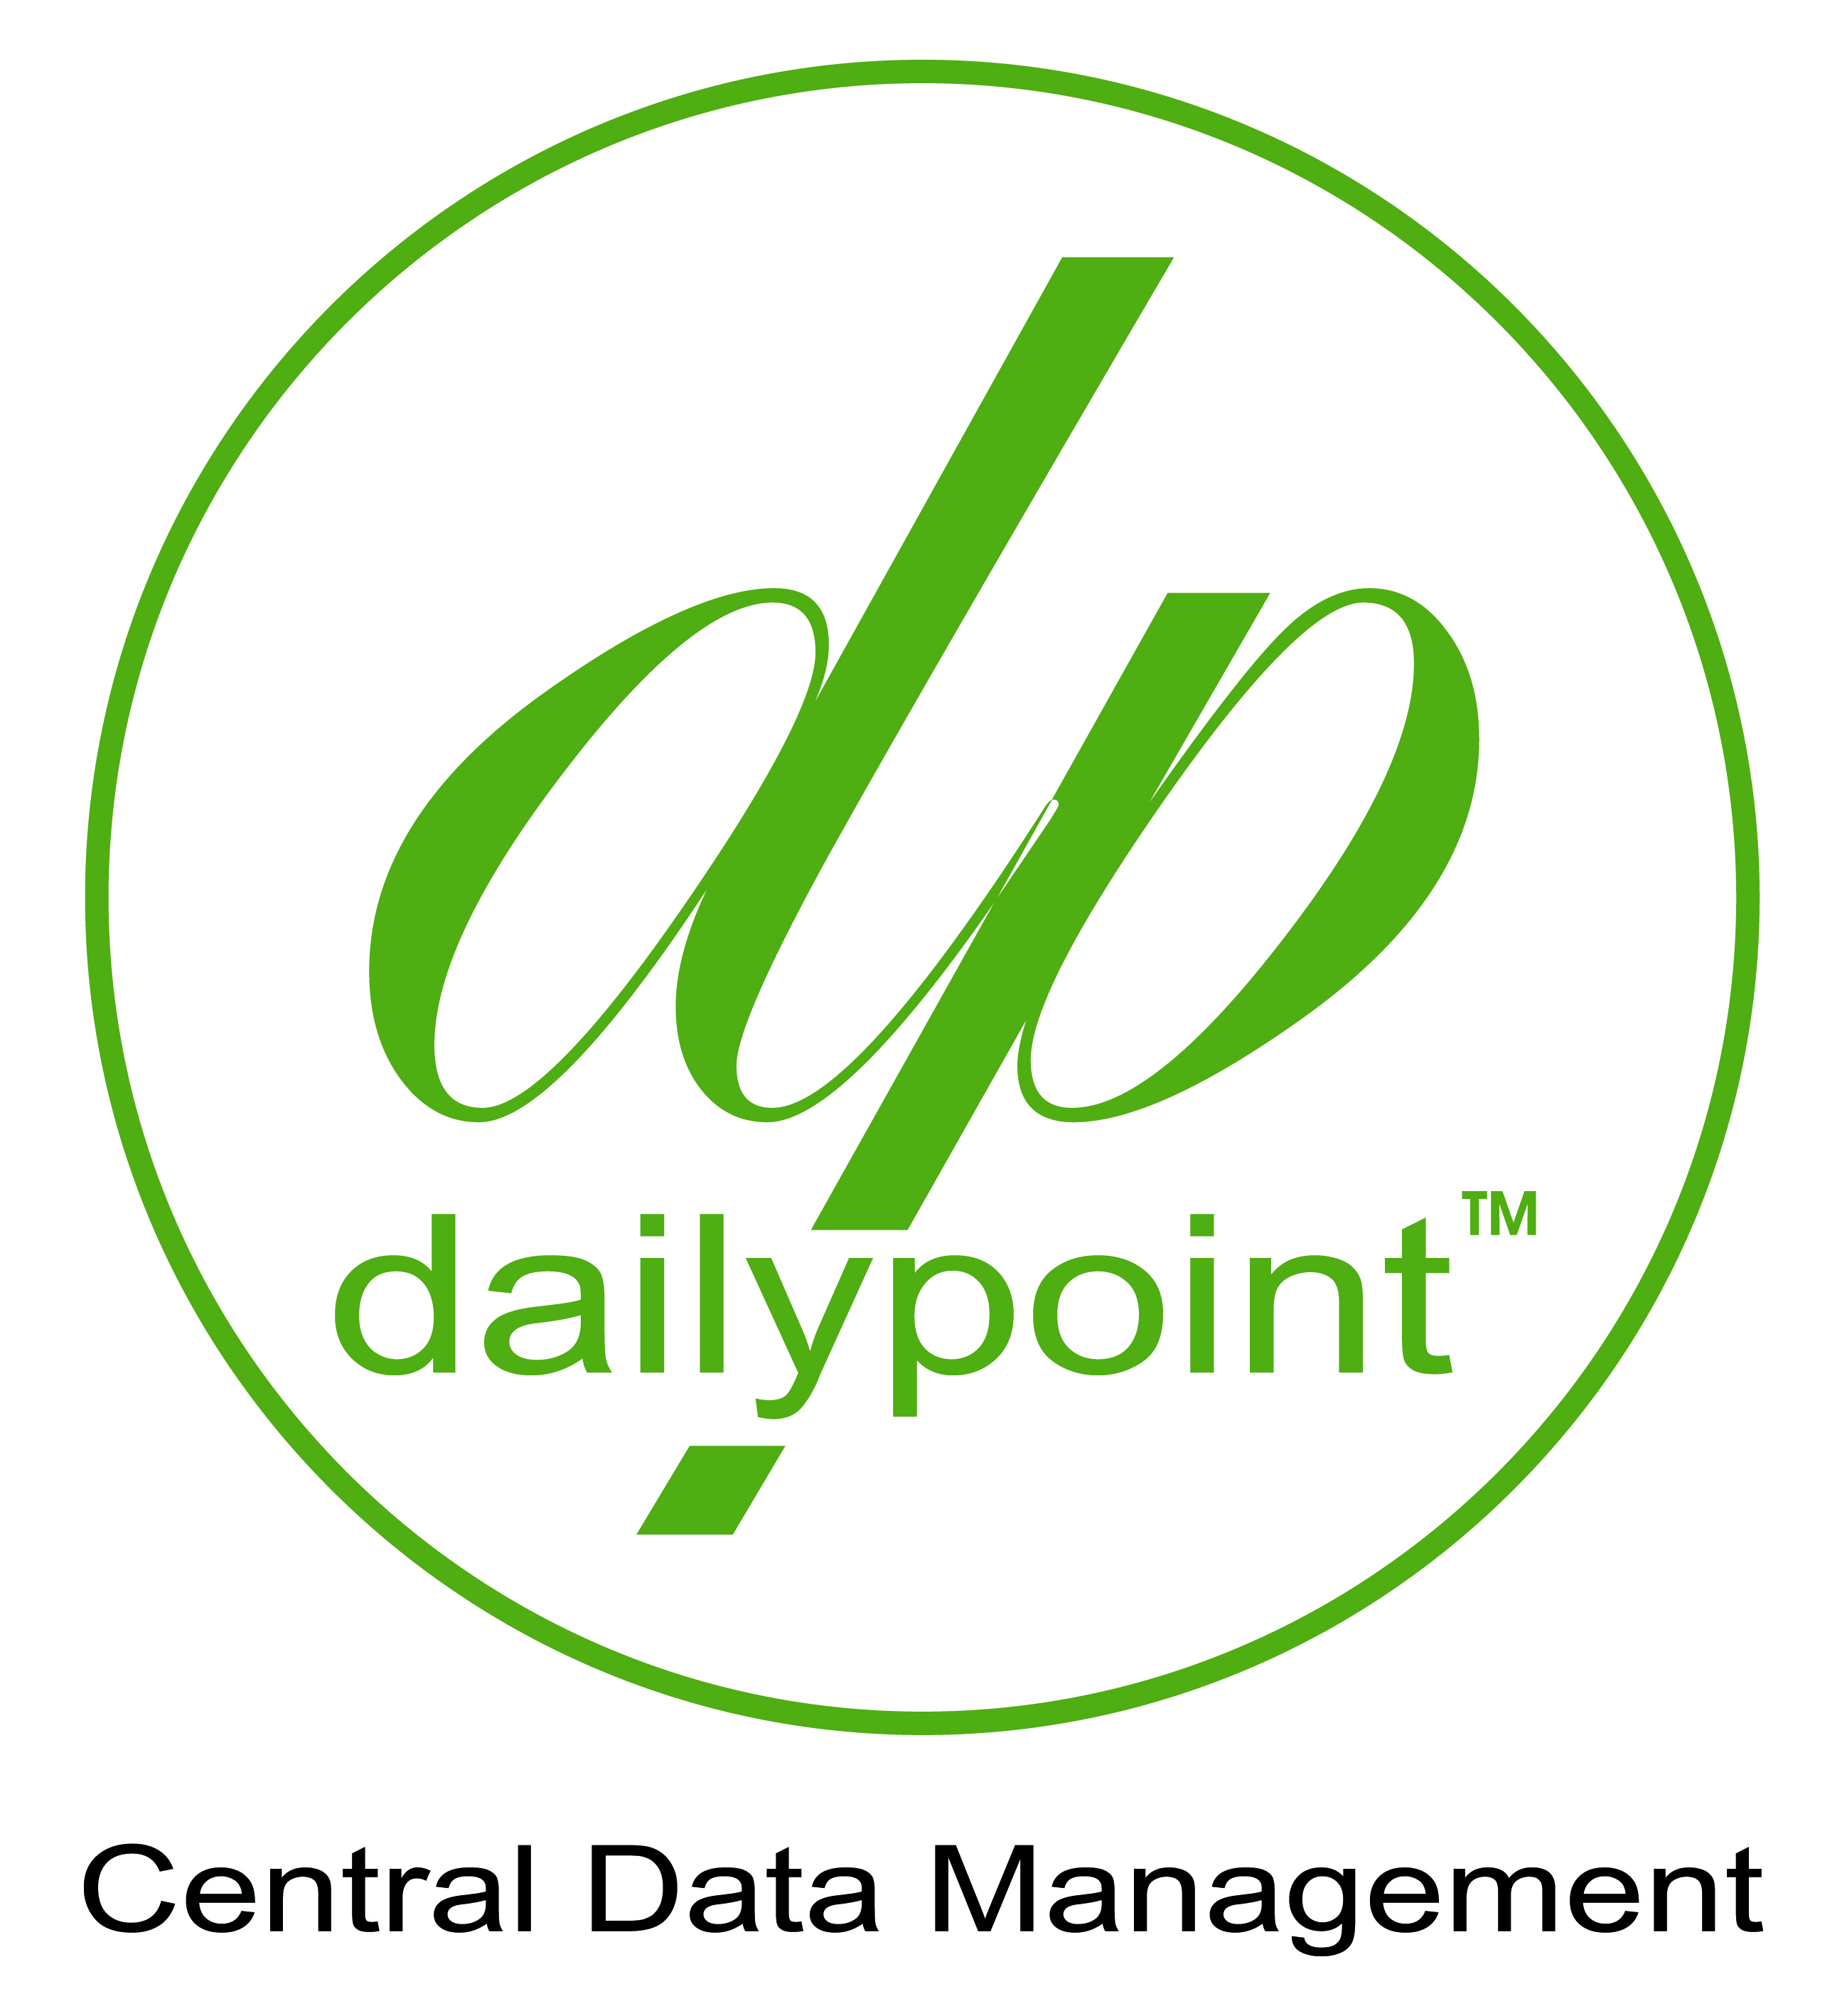 dailypoint™ achieves Level II Global Support Certification